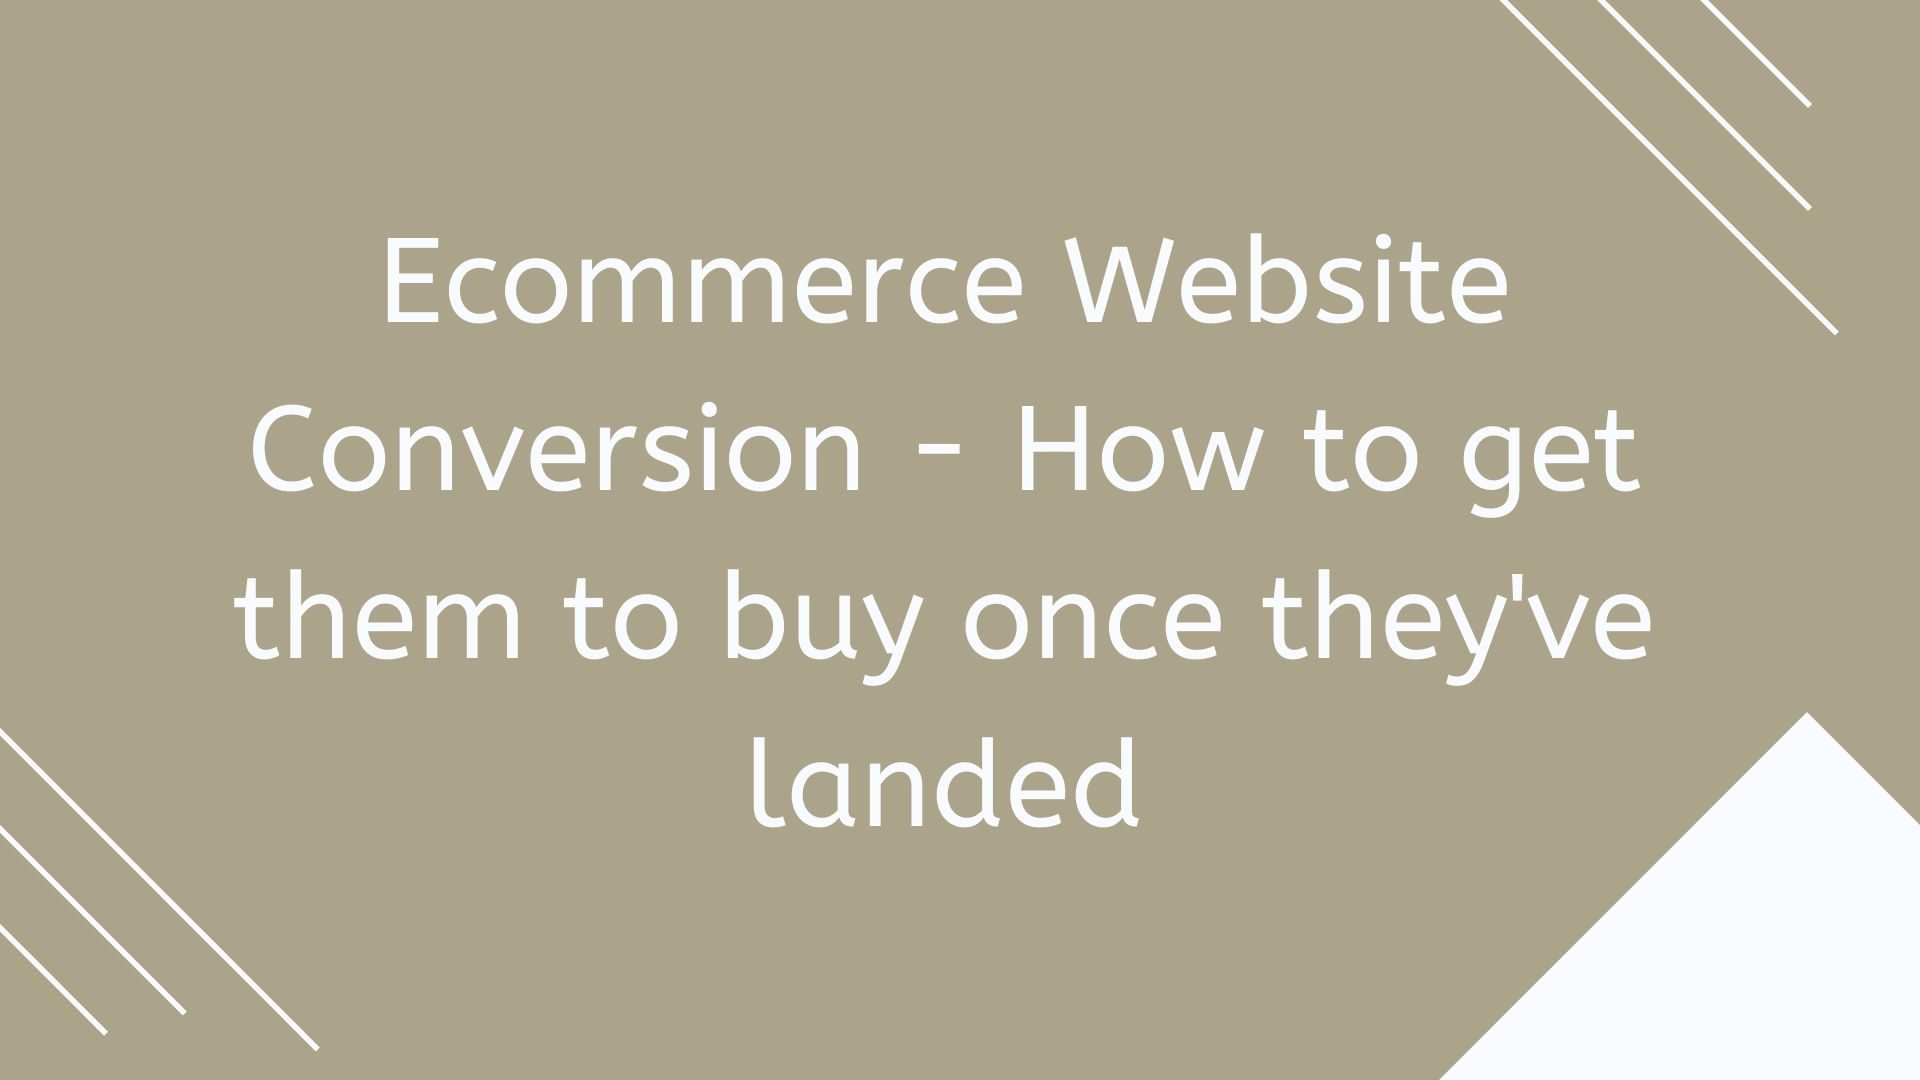 eCommerce Website Conversion - How to get them to buy once they've landed